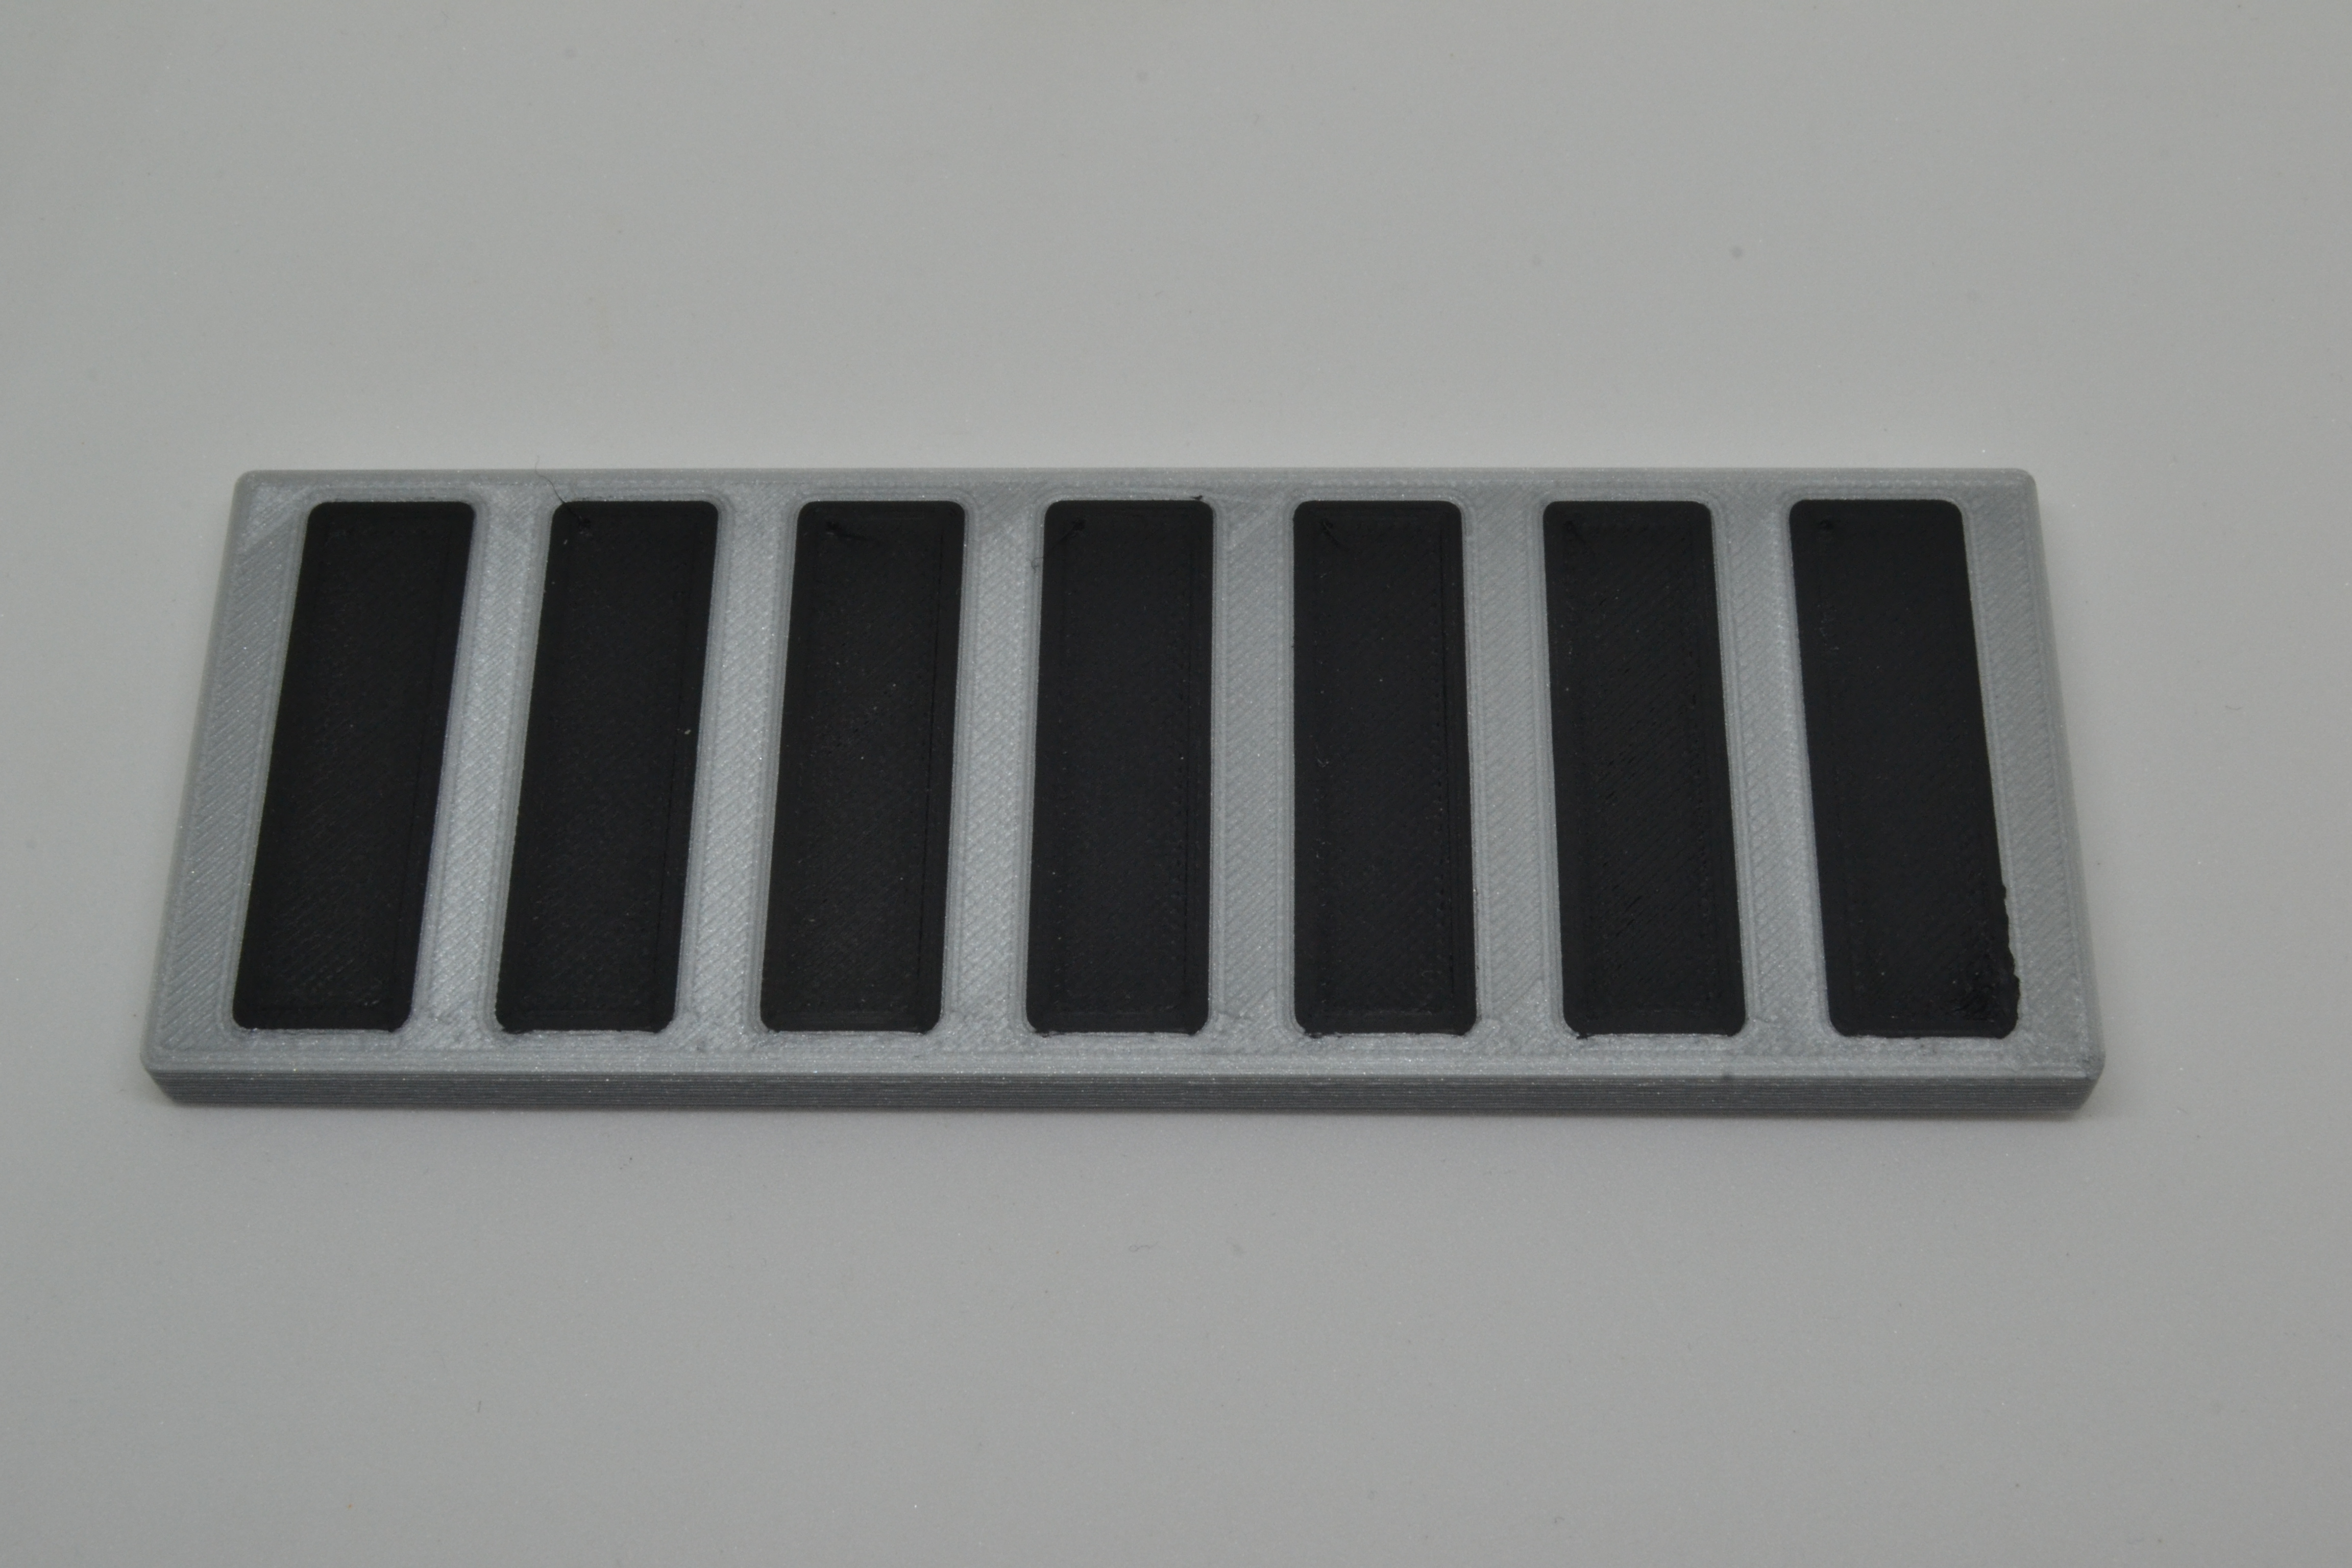 Picture of Fully 3D Printed Arduino-Based Piano